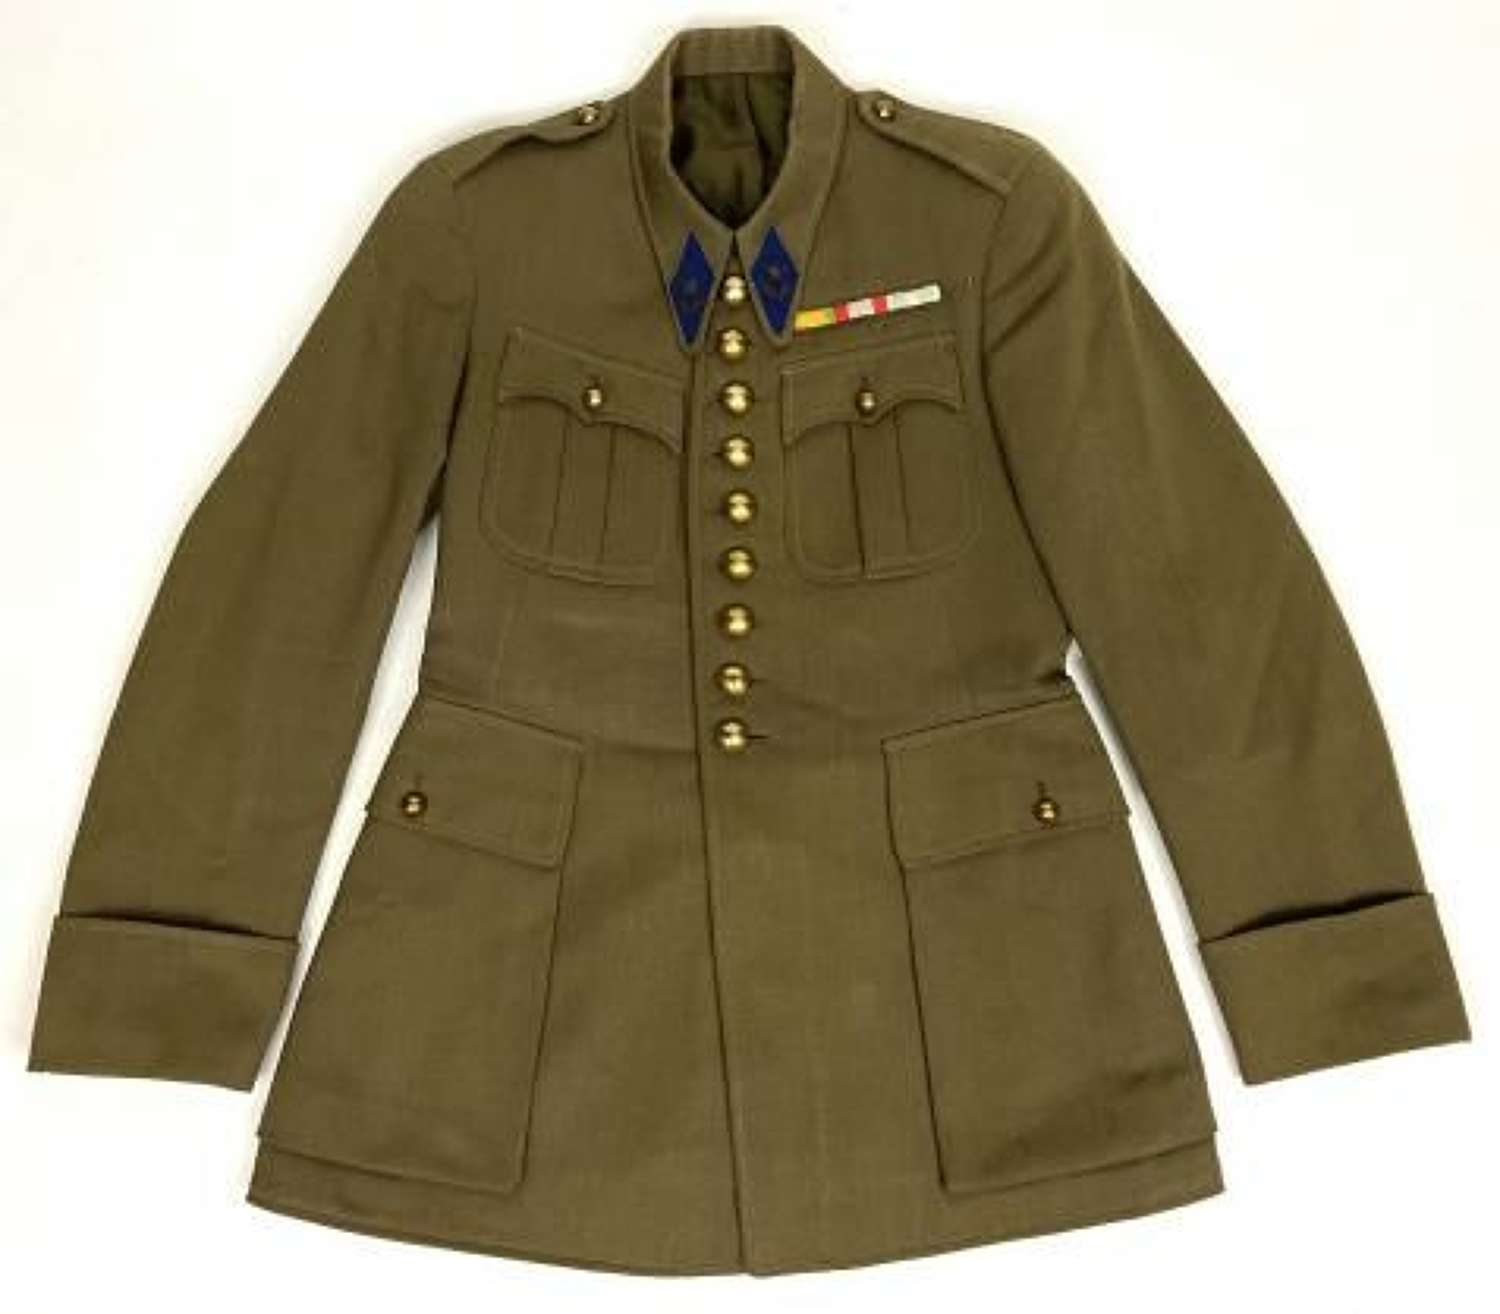 Original 1936 Dated French Army Officers Jacket